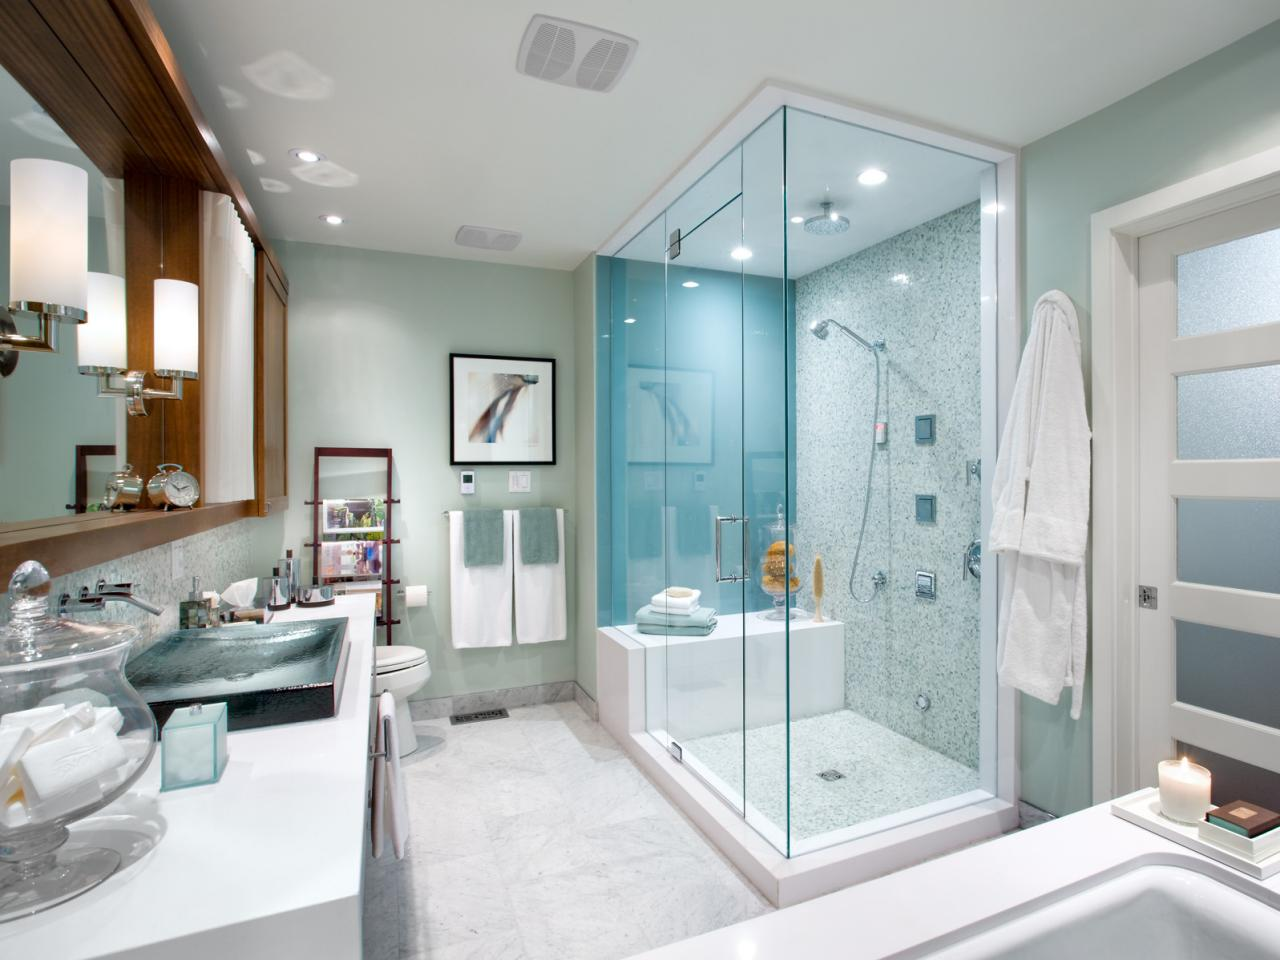 Bathroom Remodeling Ideas On A Budget That Are Budget: remodeling your bathroom on a budget